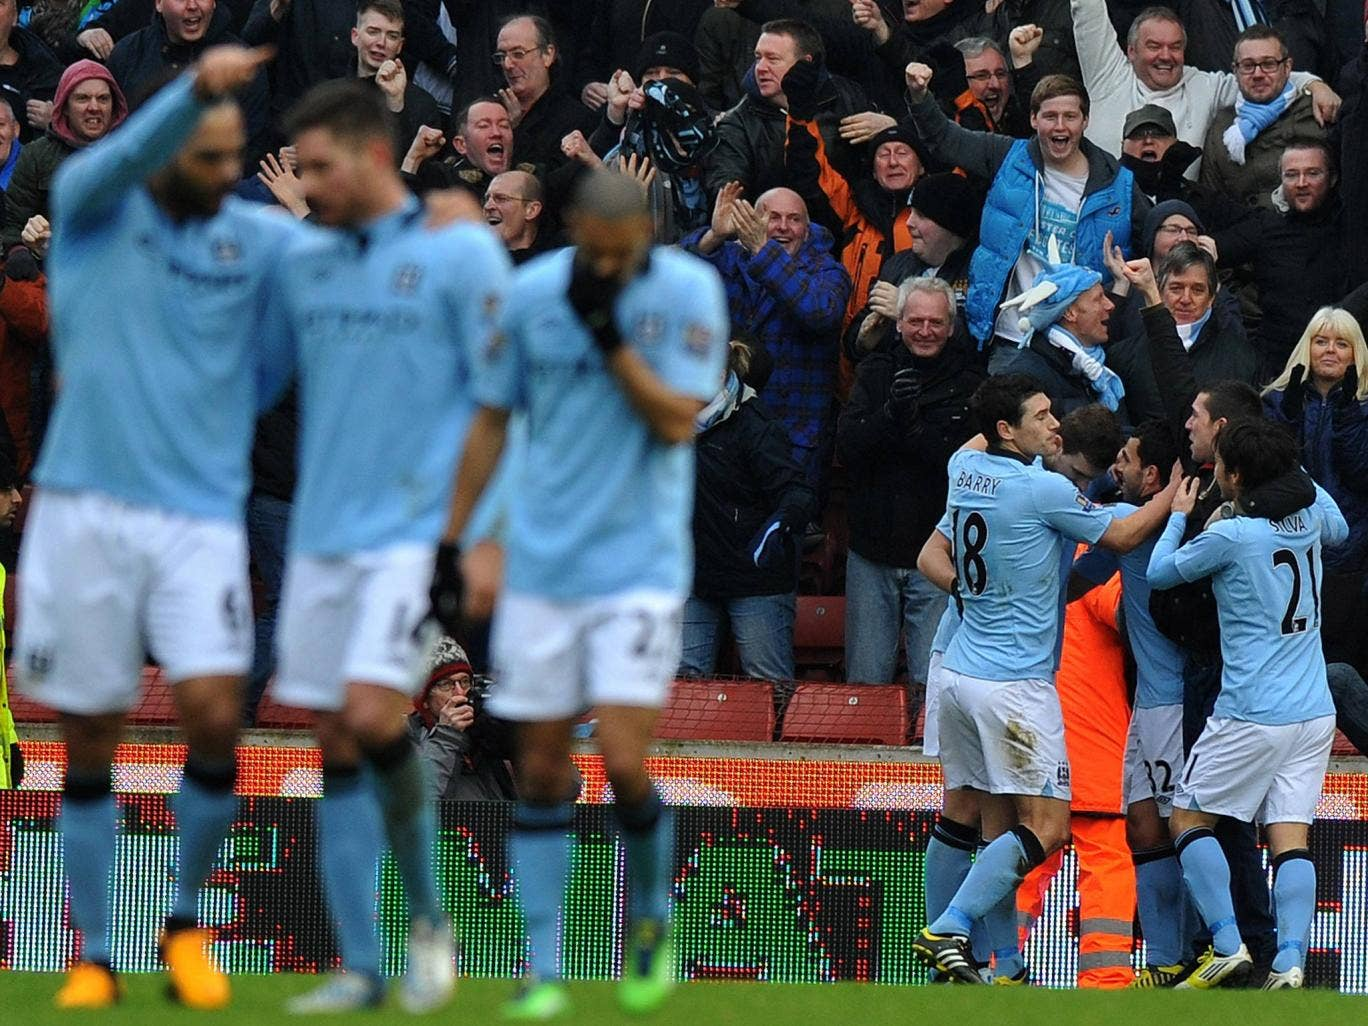 Pablo Zabaleta is congratulated on his late goal for Manchester City against Stoke